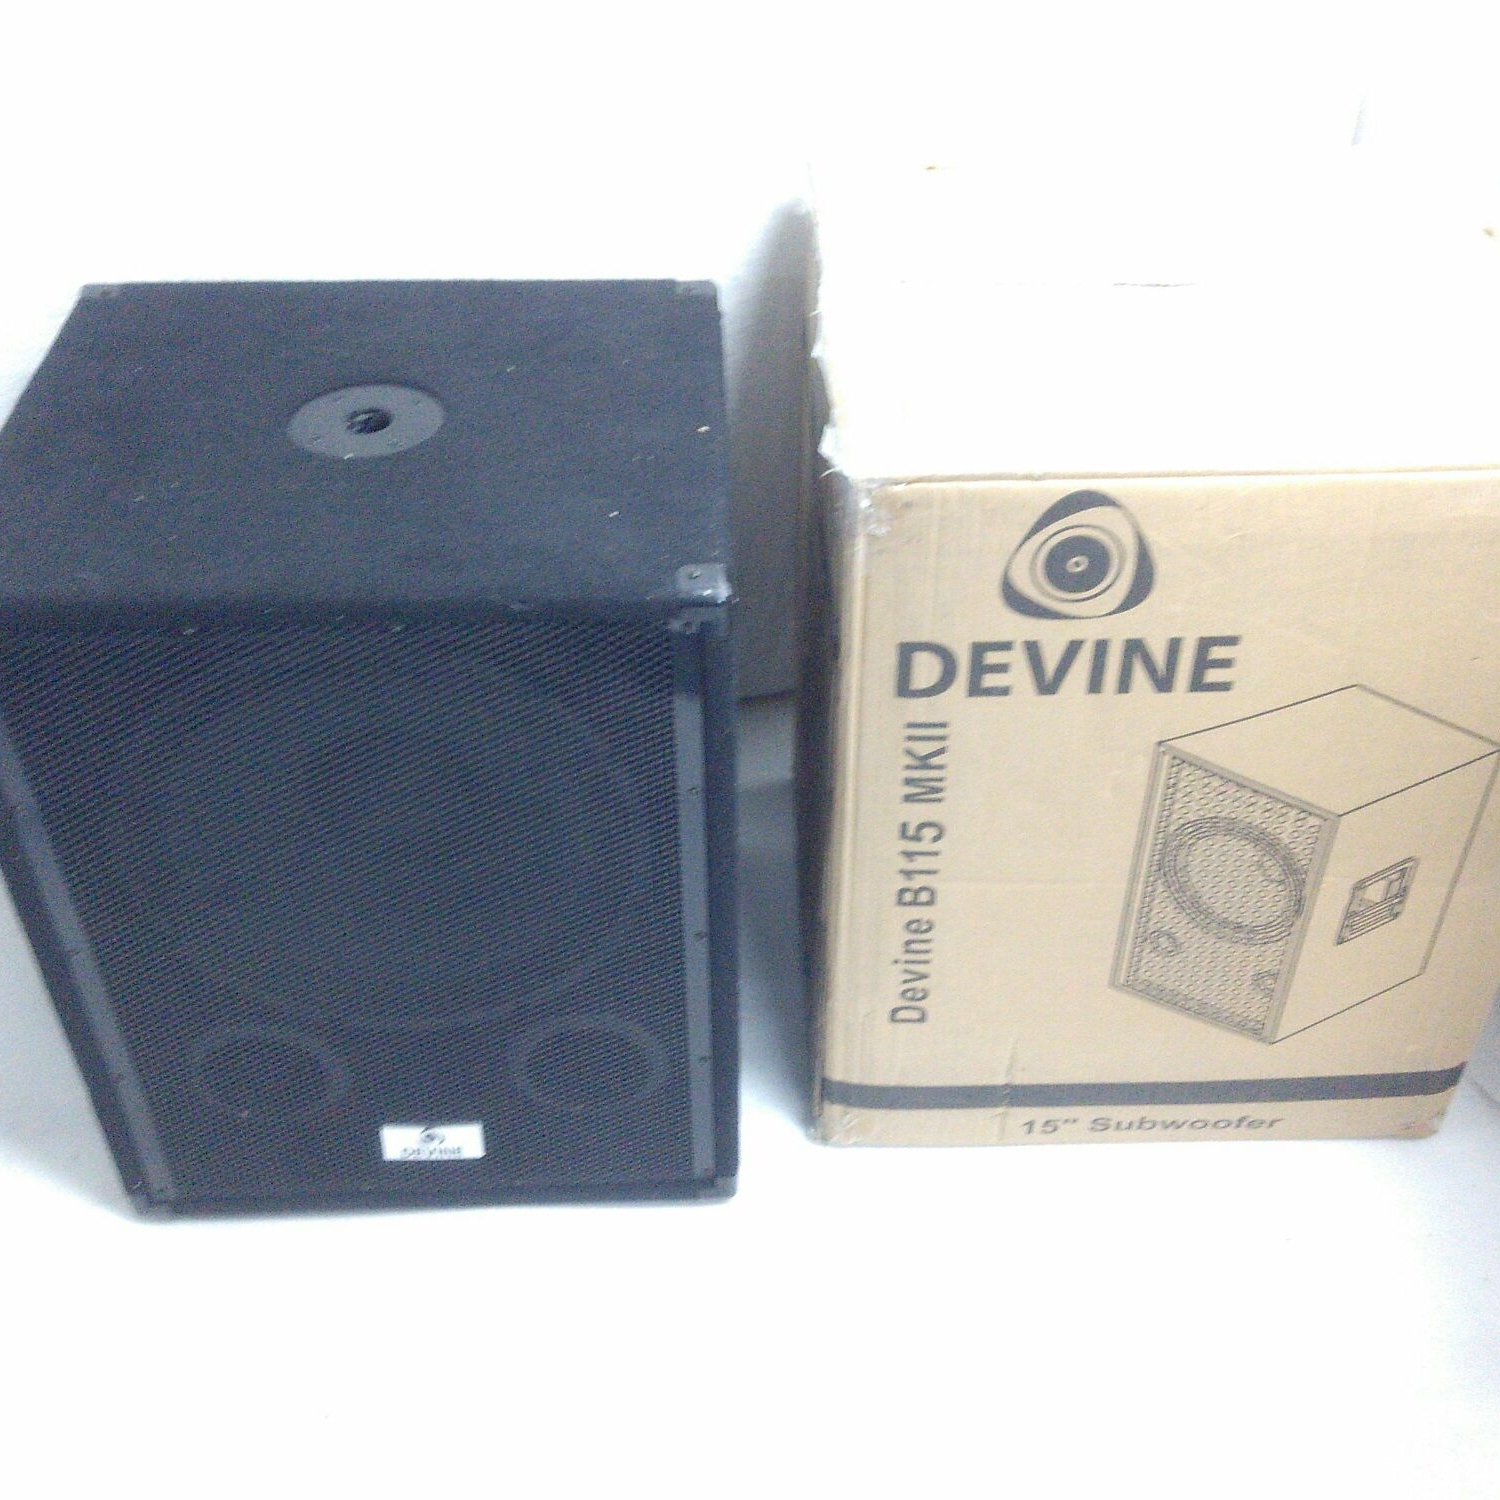 b ware devine b115 mkii passiver subwoofer kaufen bax shop. Black Bedroom Furniture Sets. Home Design Ideas